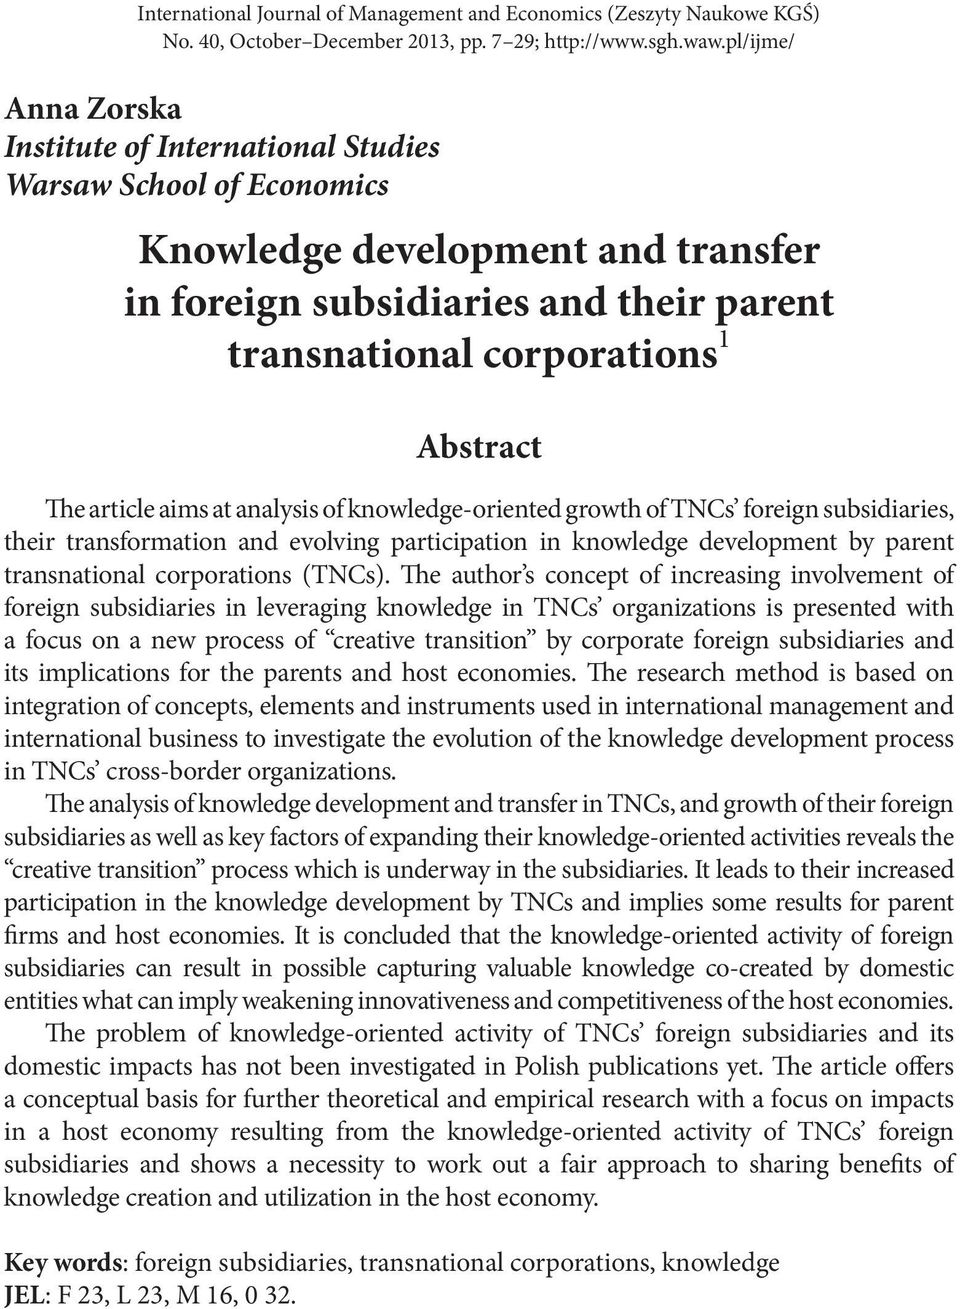 The article aims at analysis of knowledge-oriented growth of TNCs foreign subsidiaries, their transformation and evolving participation in knowledge development by parent transnational corporations